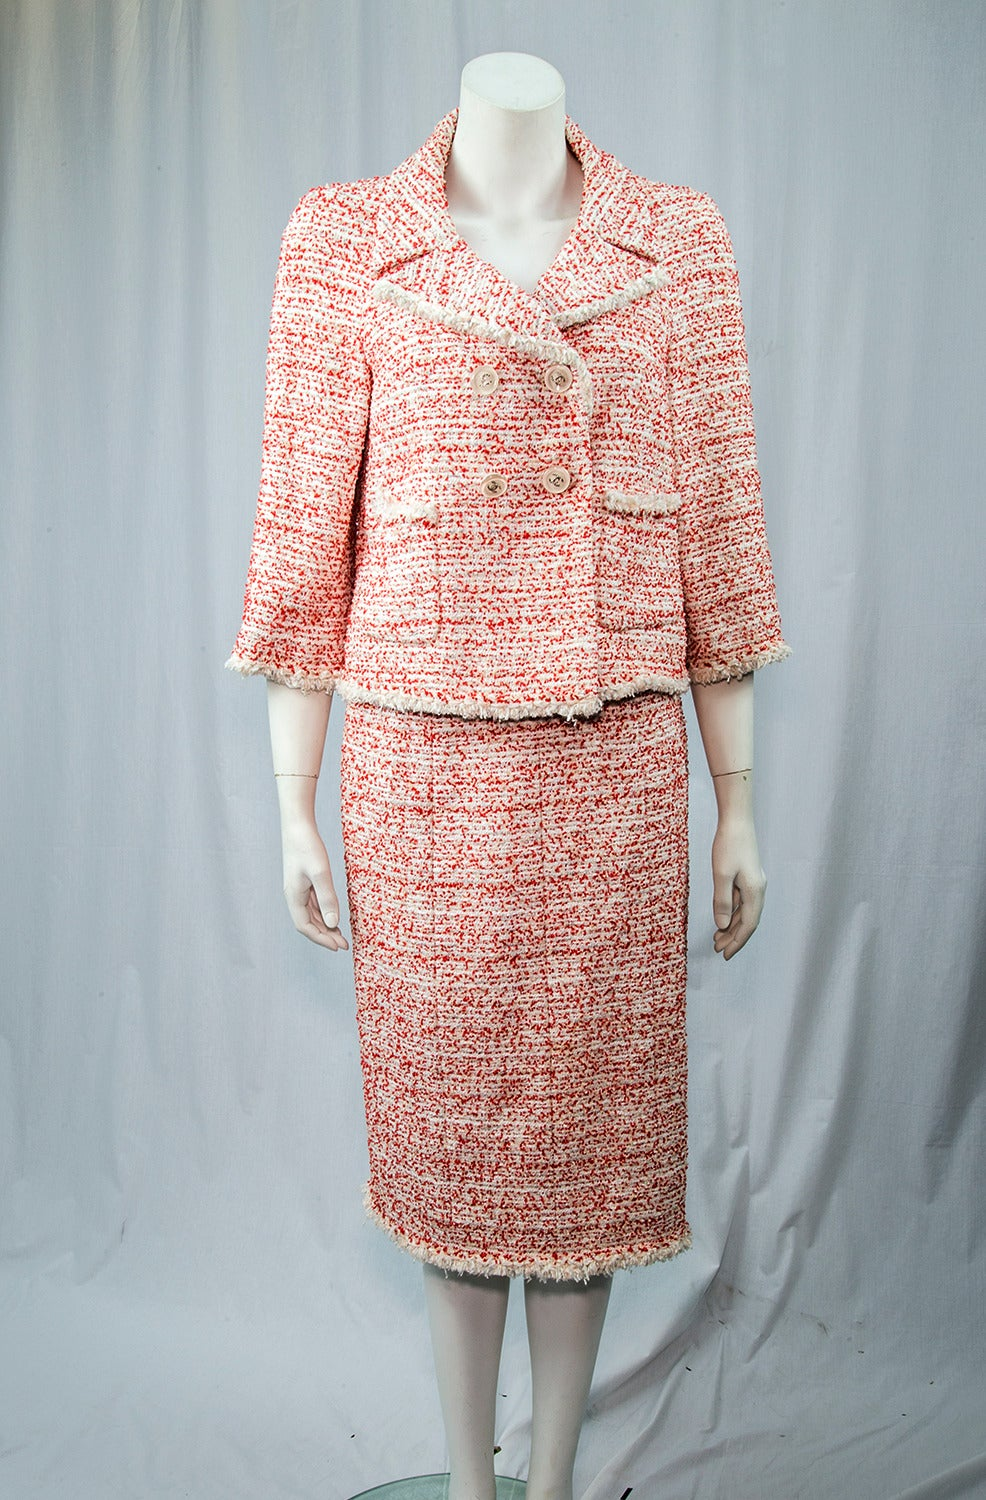 Classic Chanel Beautiful Red And White Tweed Suit For Sale